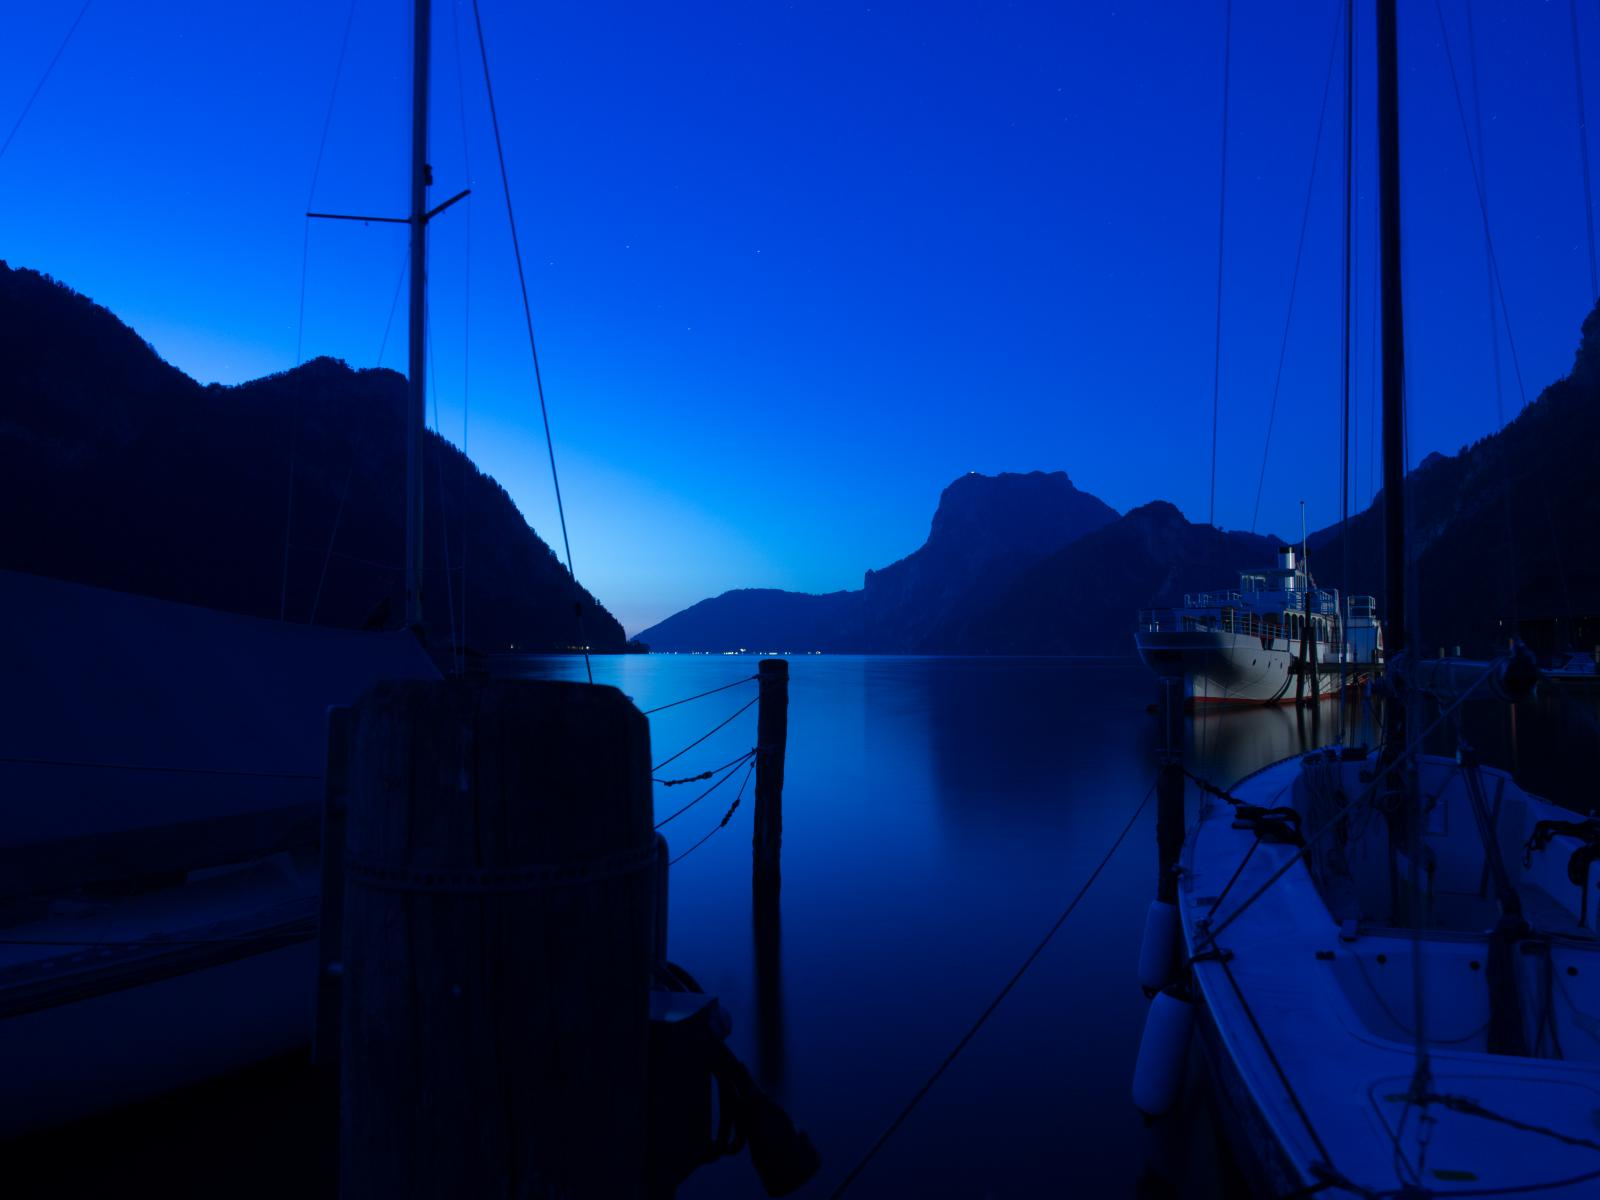 Sommerabend am Traunsee